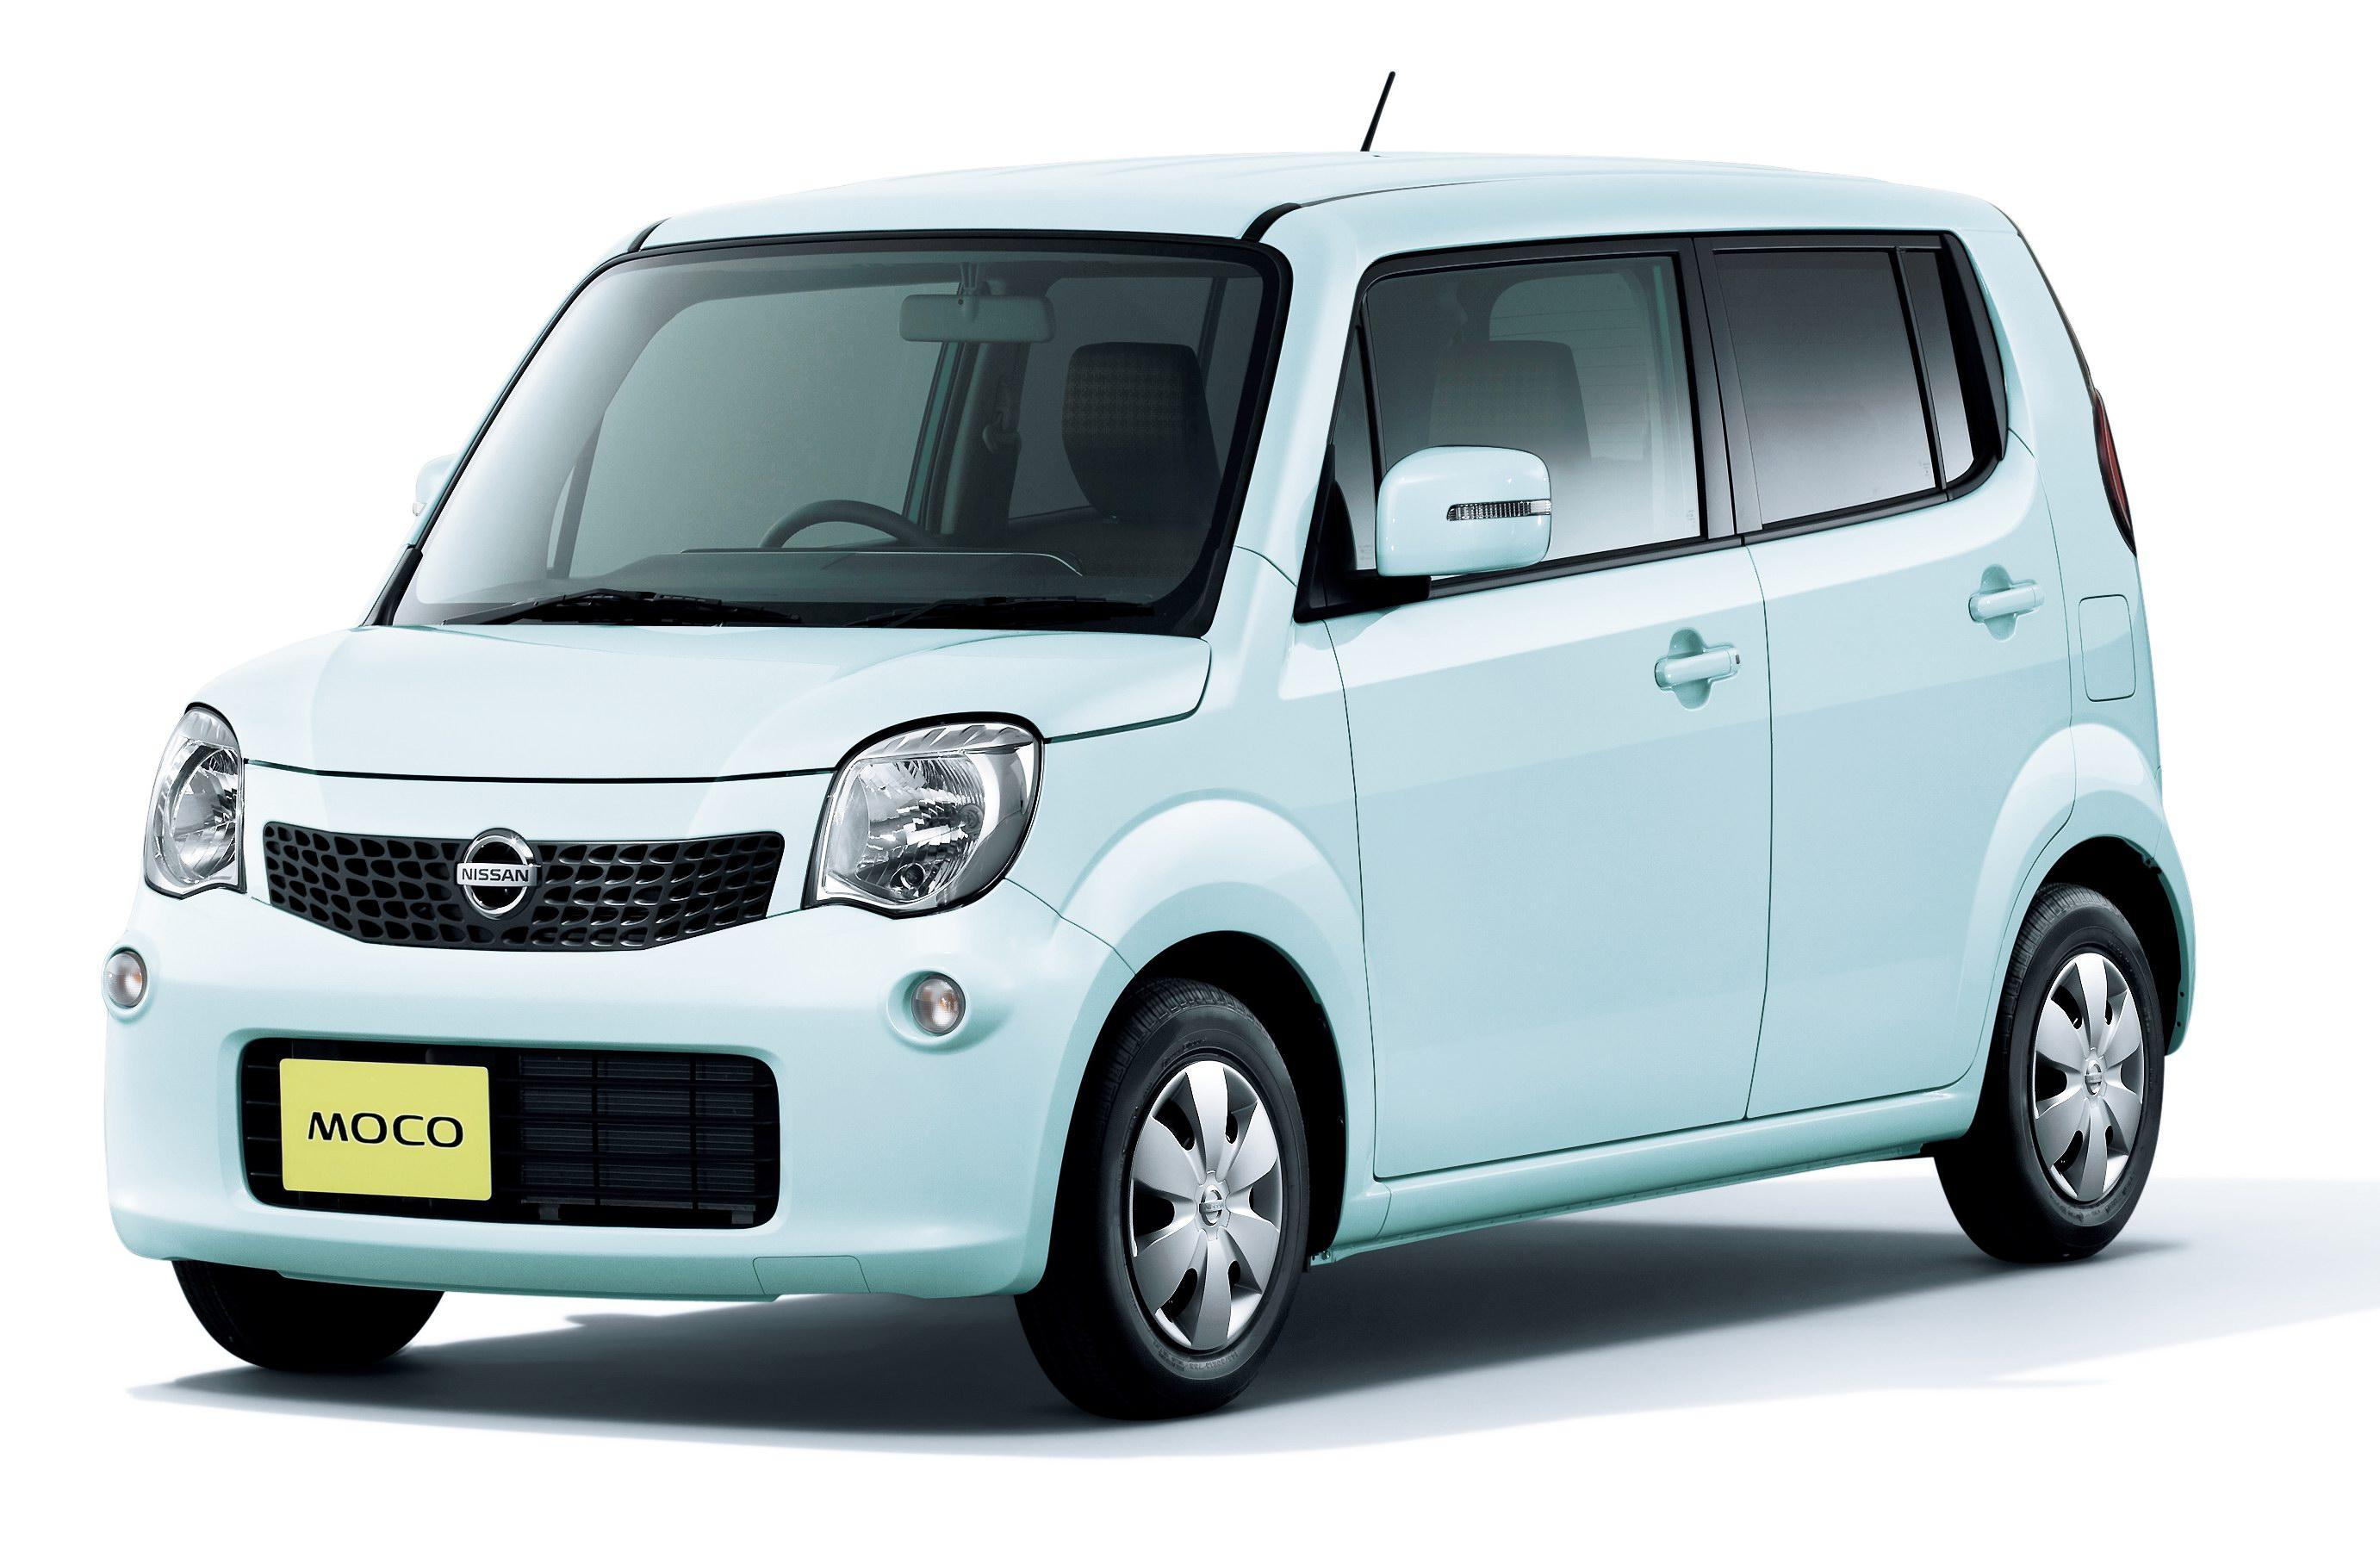 Nissan Moco 2012 photo - 2